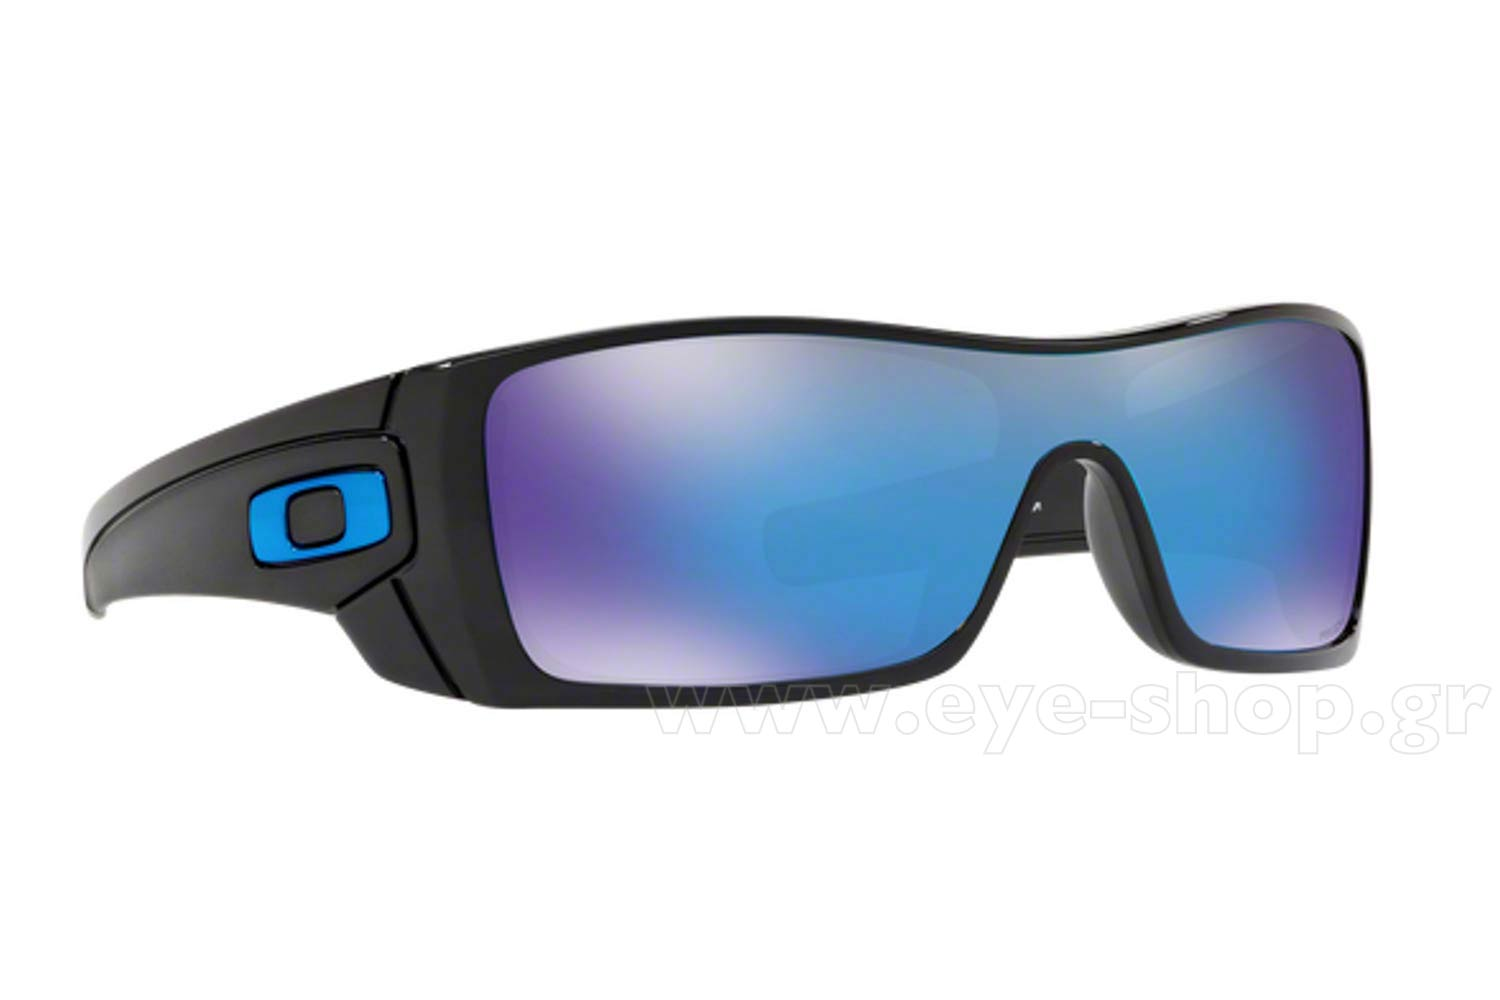 dc2ff38c28 SUNGLASSES OAKLEY Batwolf 9101 58 POLISHED BLACK